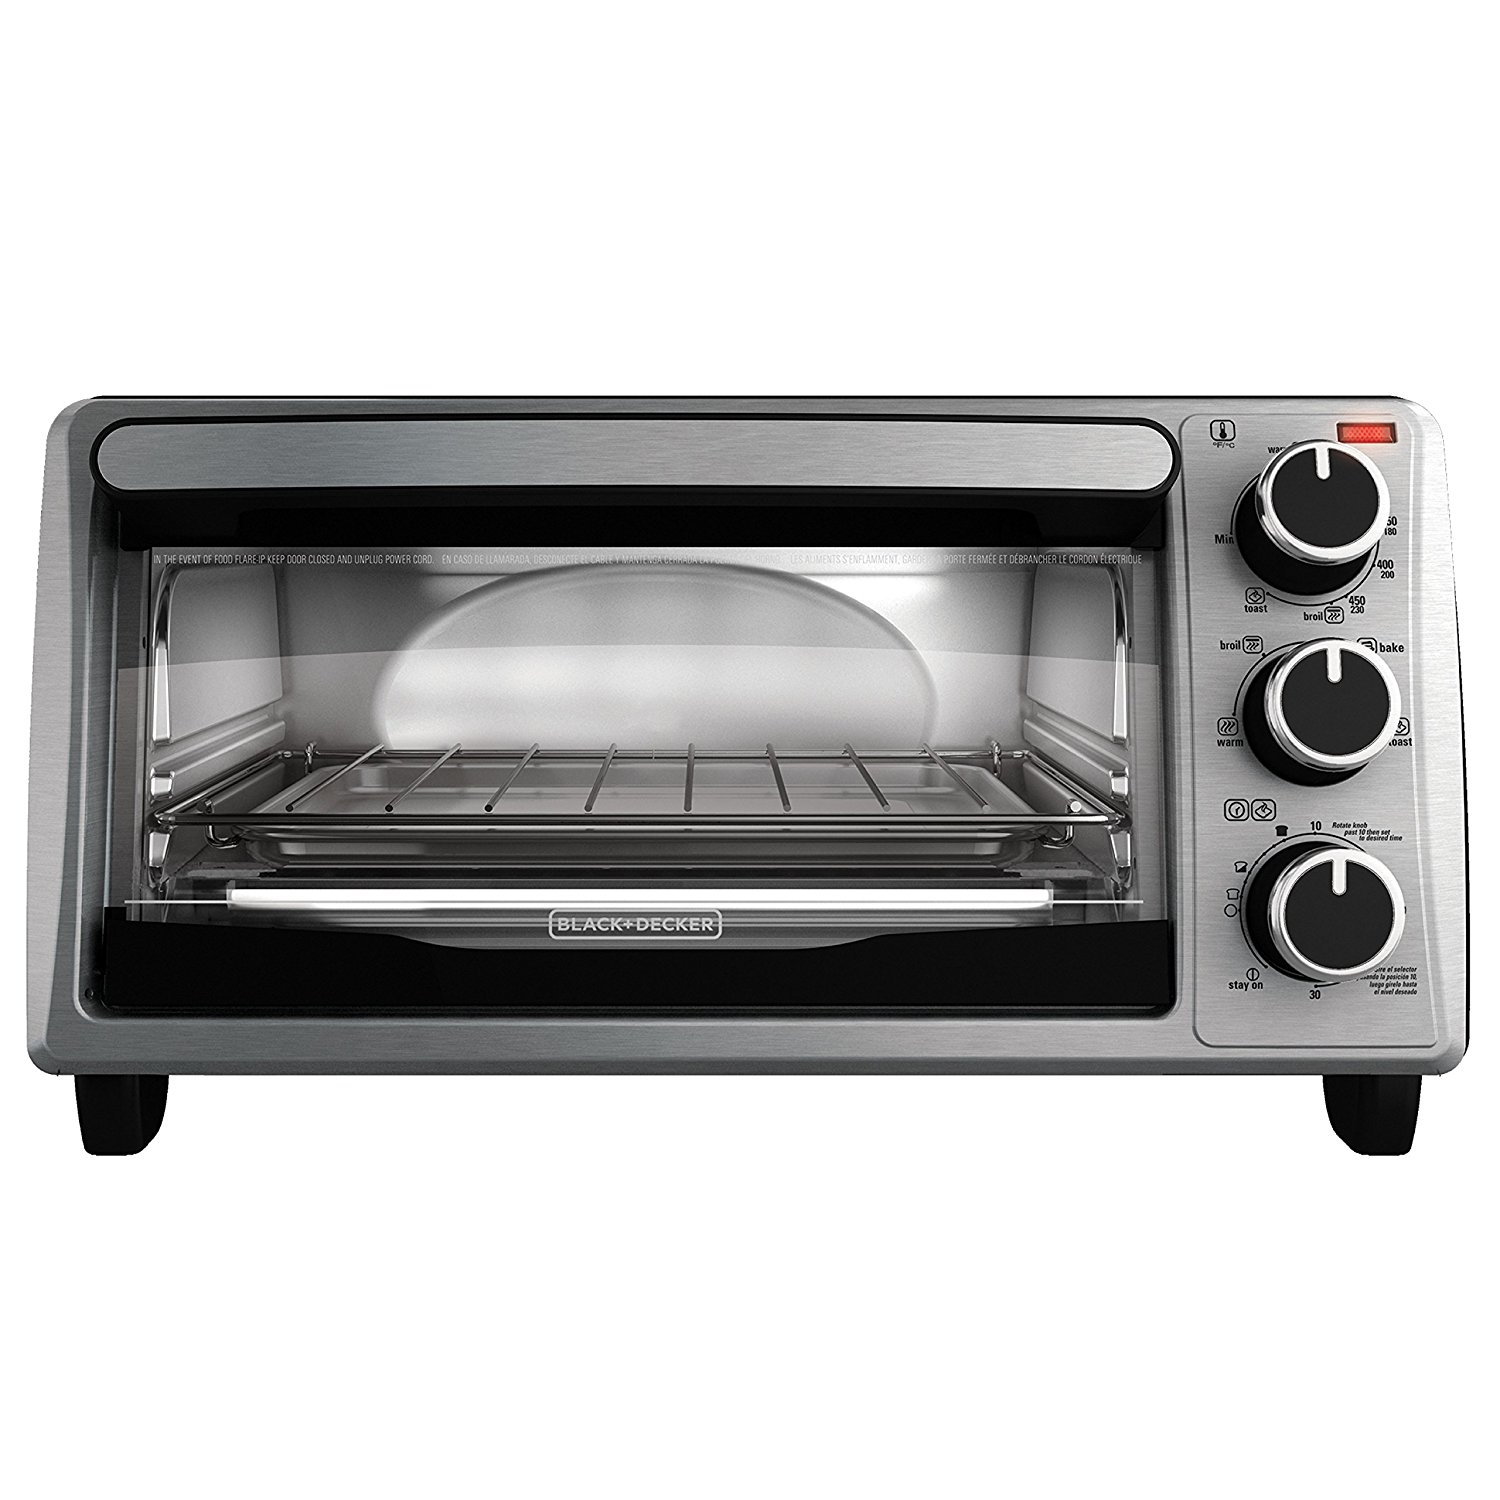 BLACK+DECKER 4-slice toaster oven, stainless steel